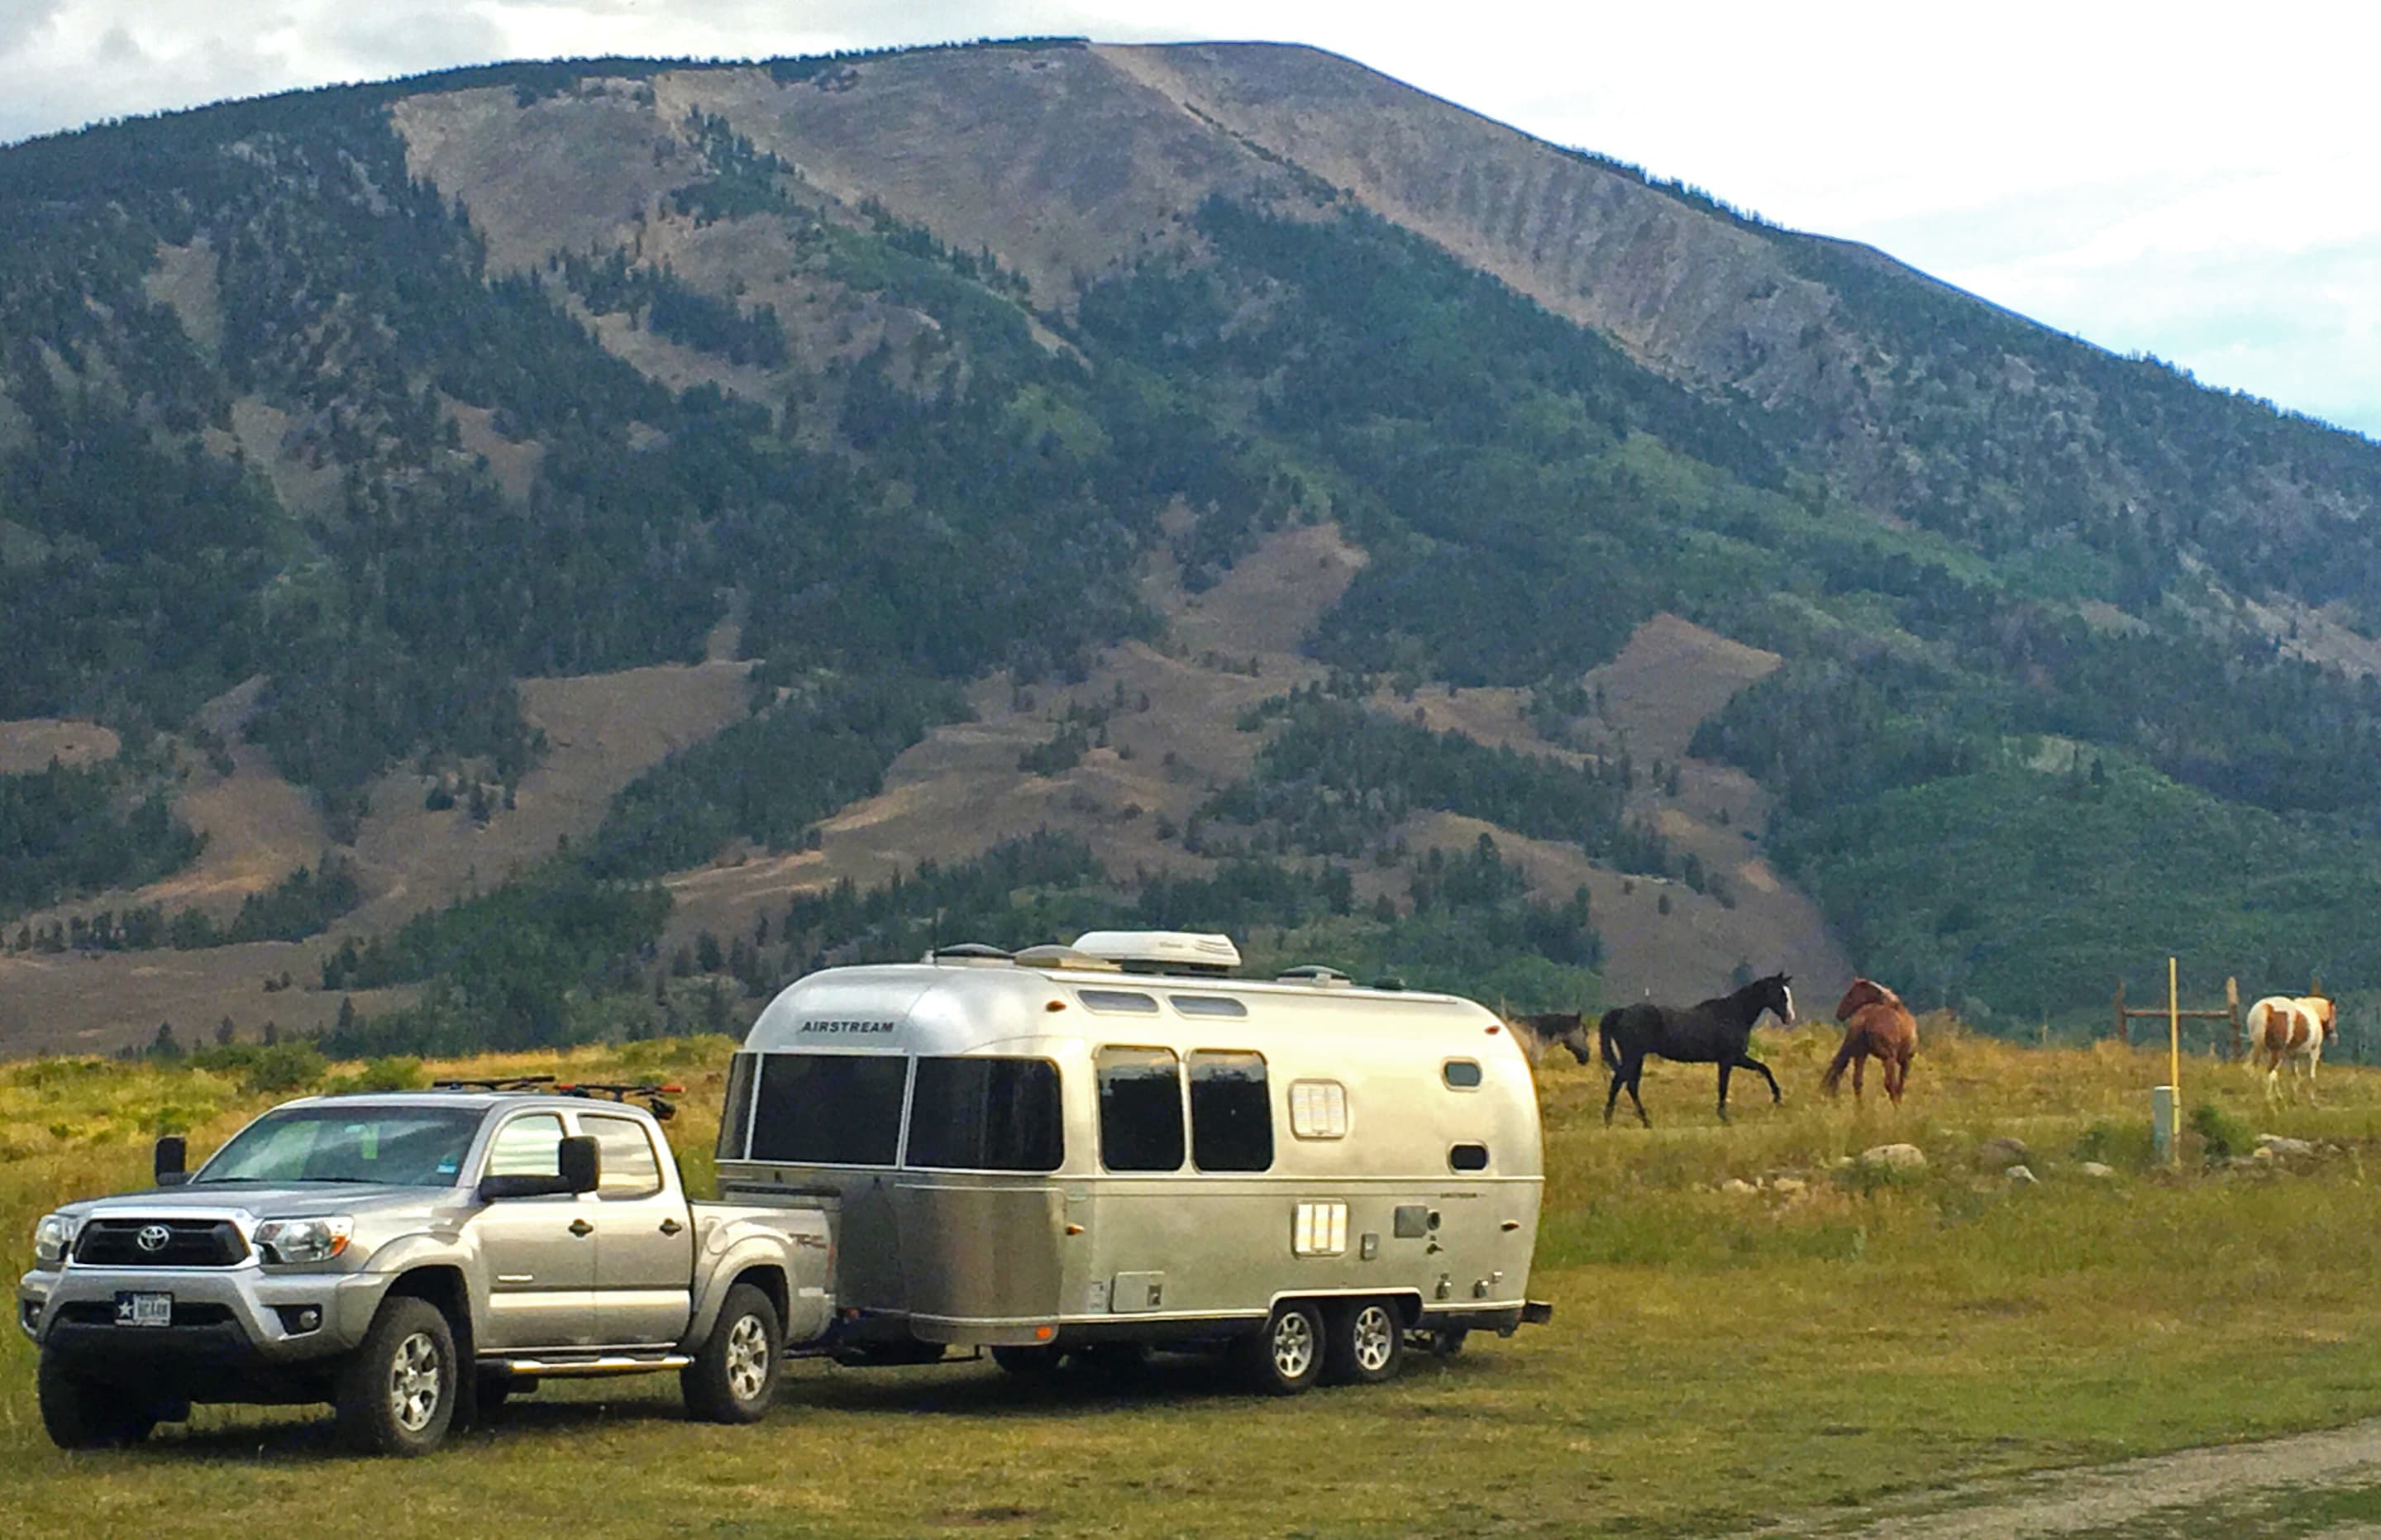 Along side a horse ranch in Wyoming. Our awesome clients pulled over to take this beautiful scene to share with us. . Airstream Flying Cloud 2014